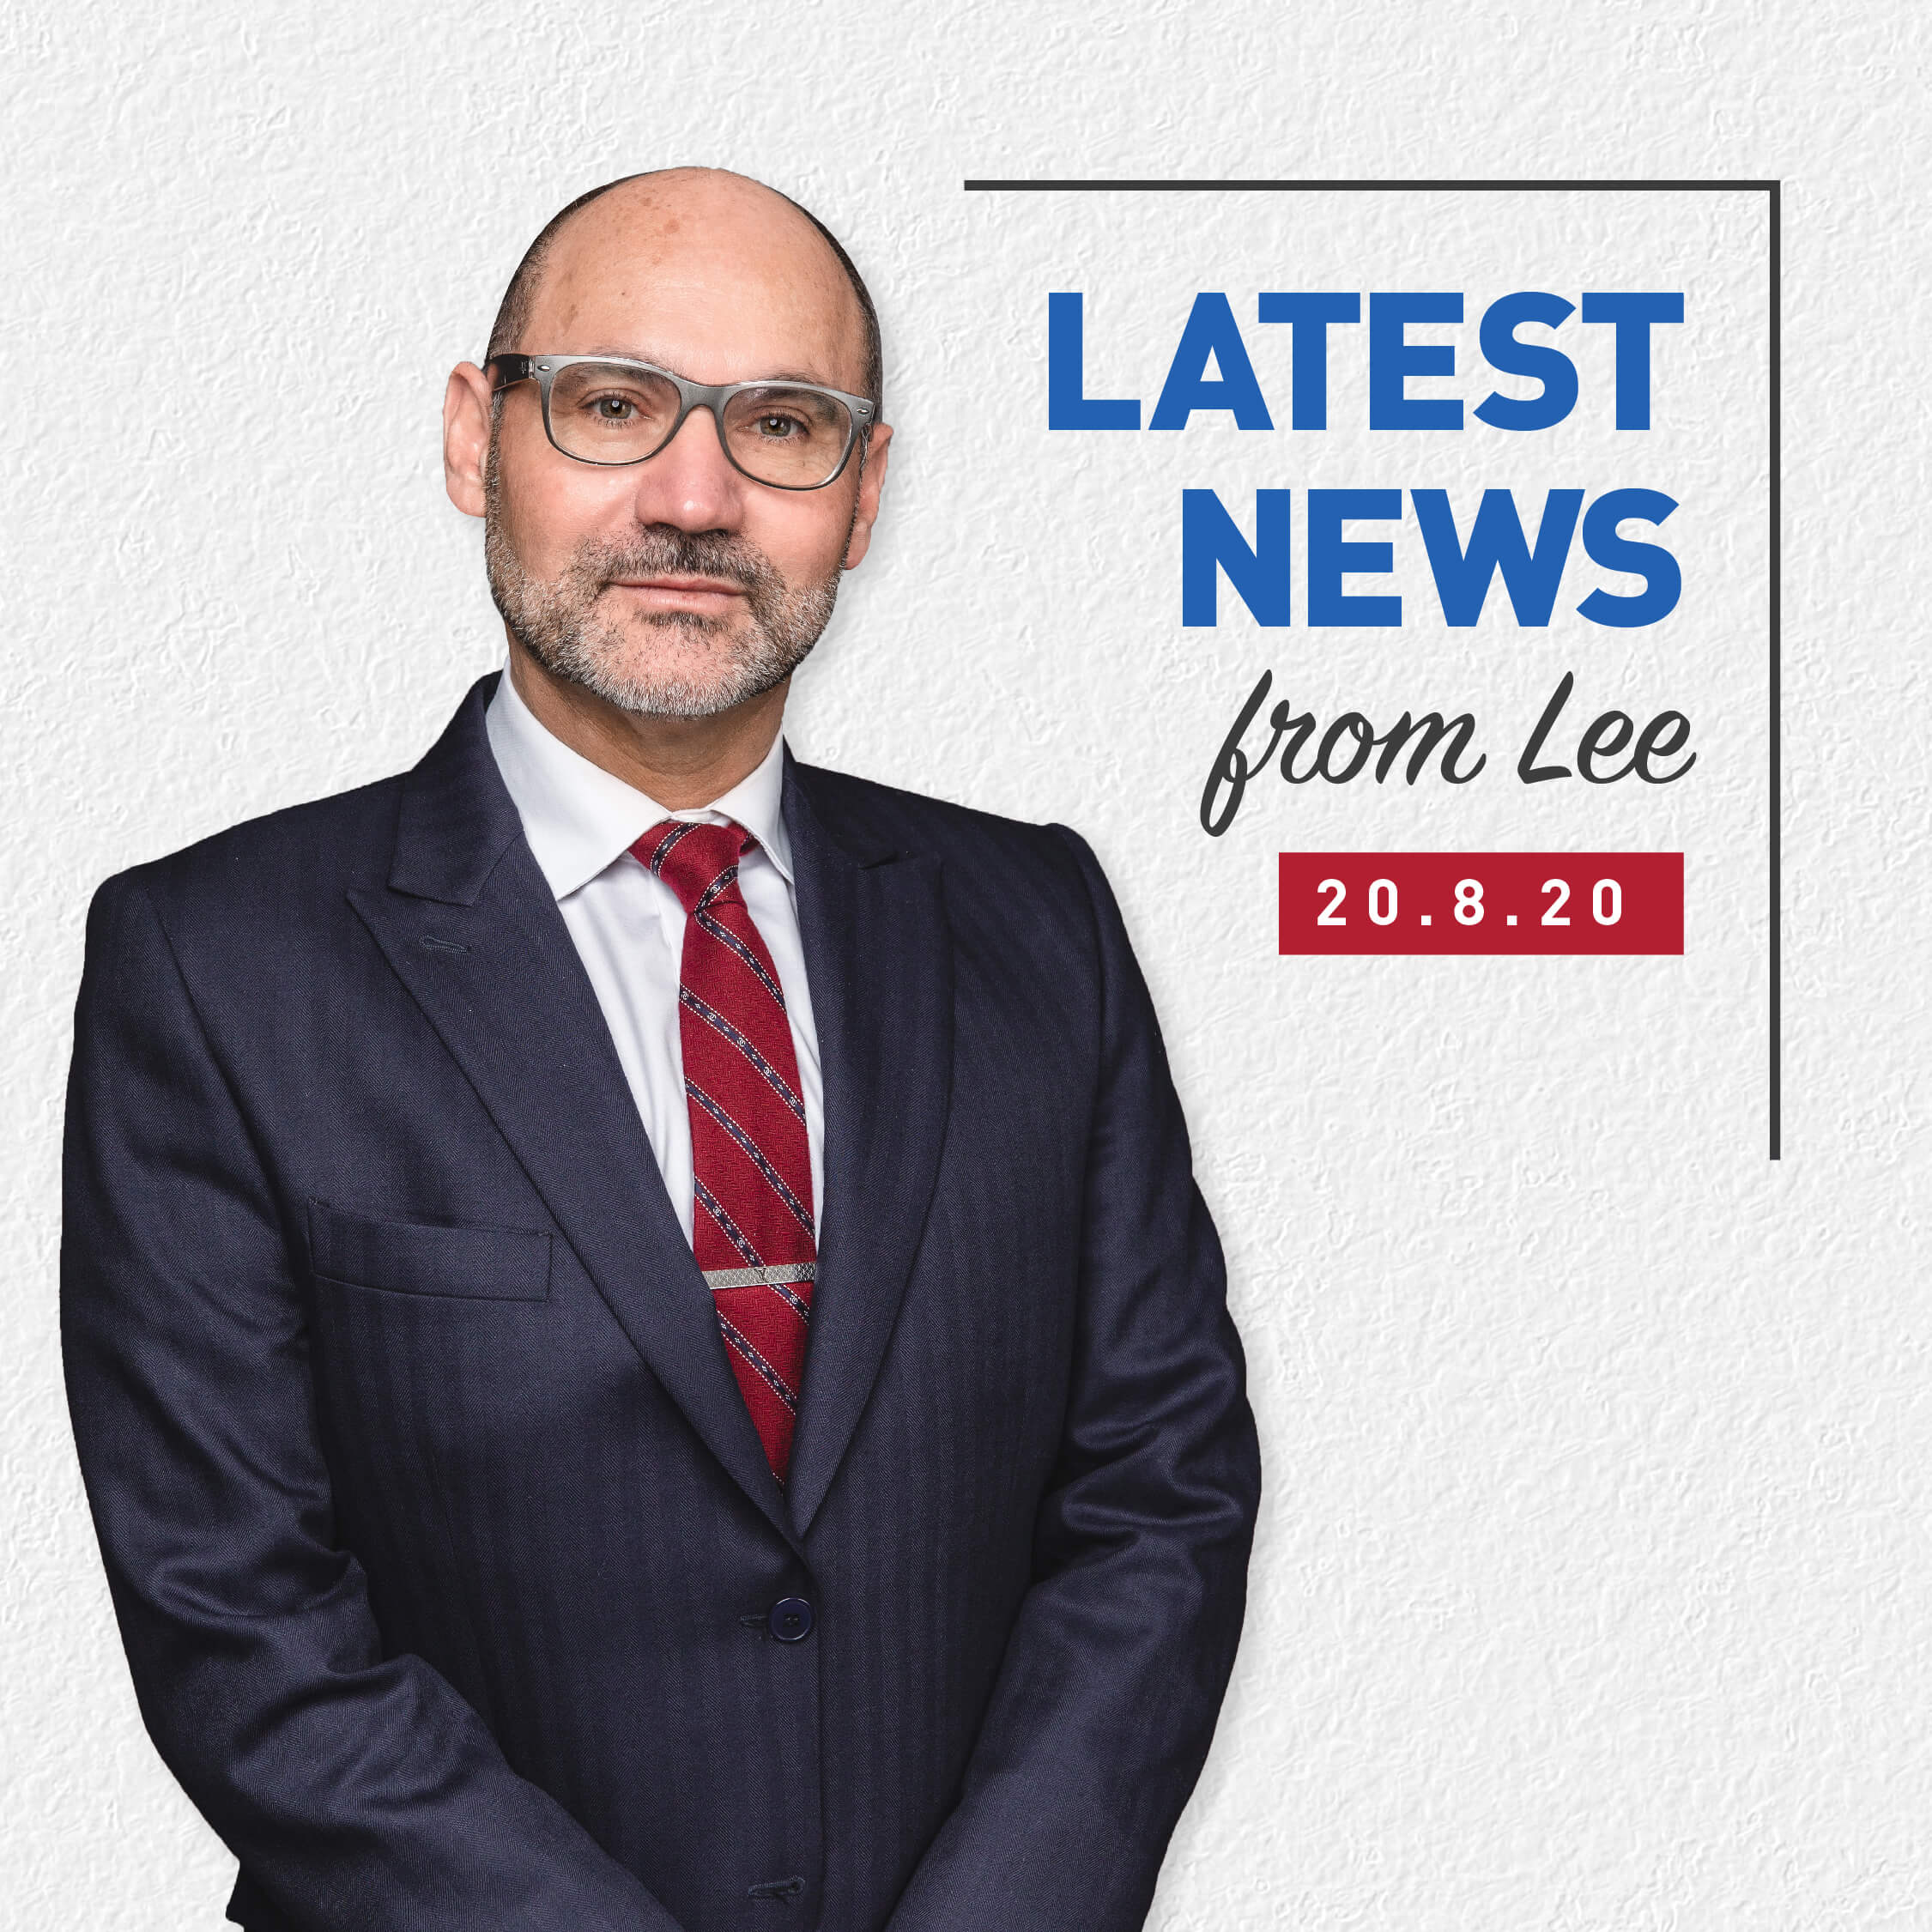 Free legal advice, Latest News From Lee 20th August 2020, Brydens Lawyers